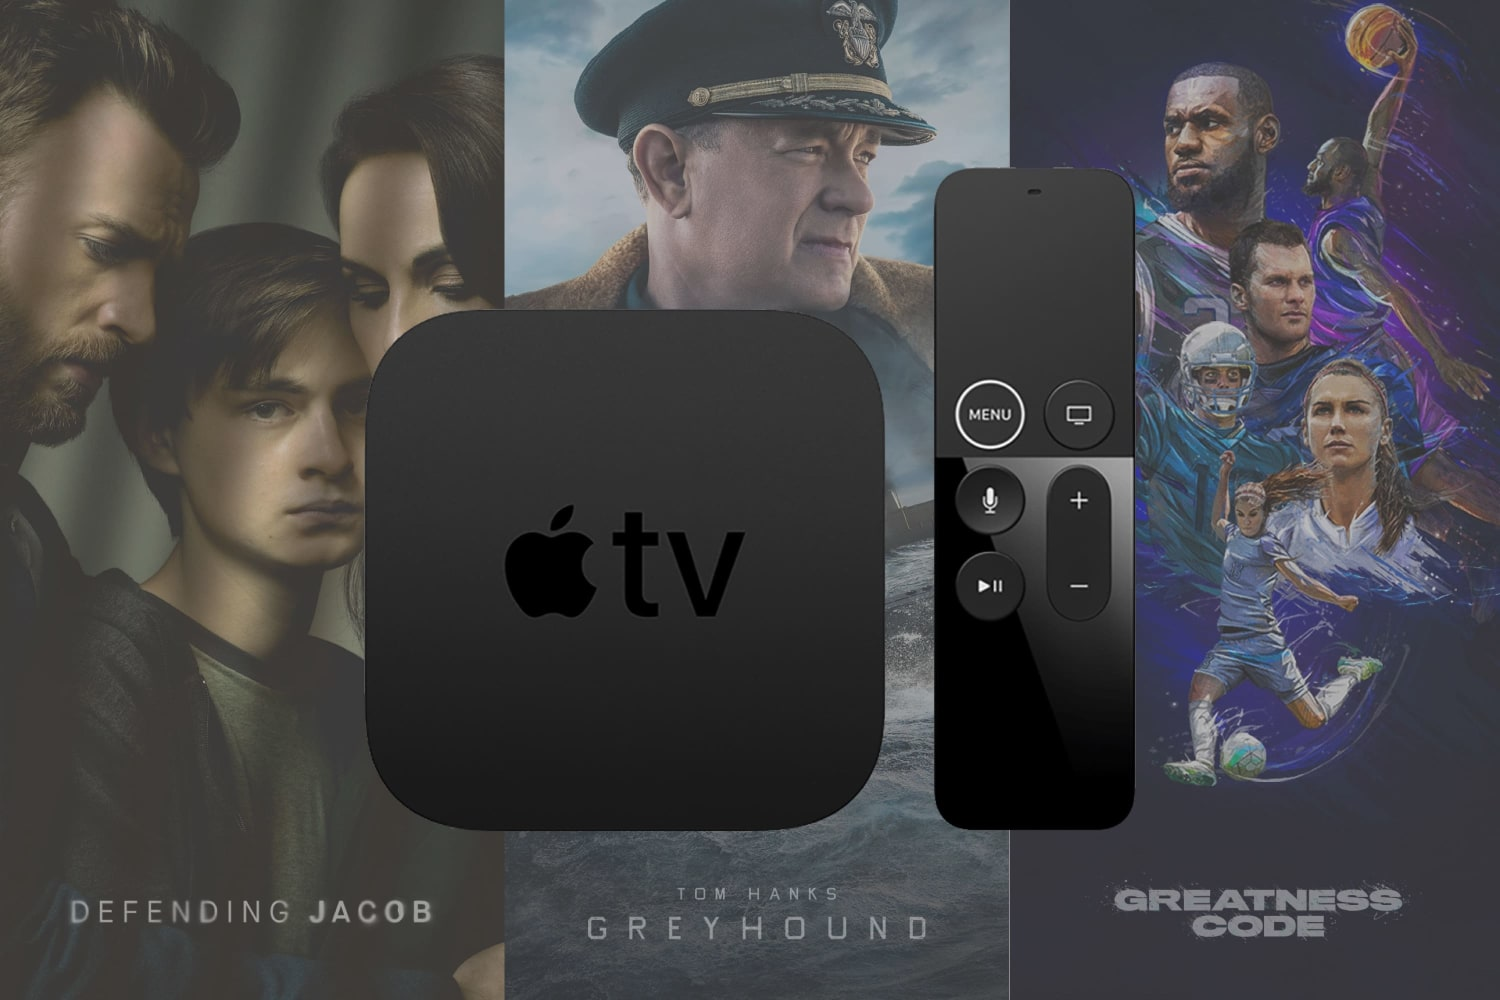 universal-electronics-enters-the-apple-tv-remote-arena-20201123-1